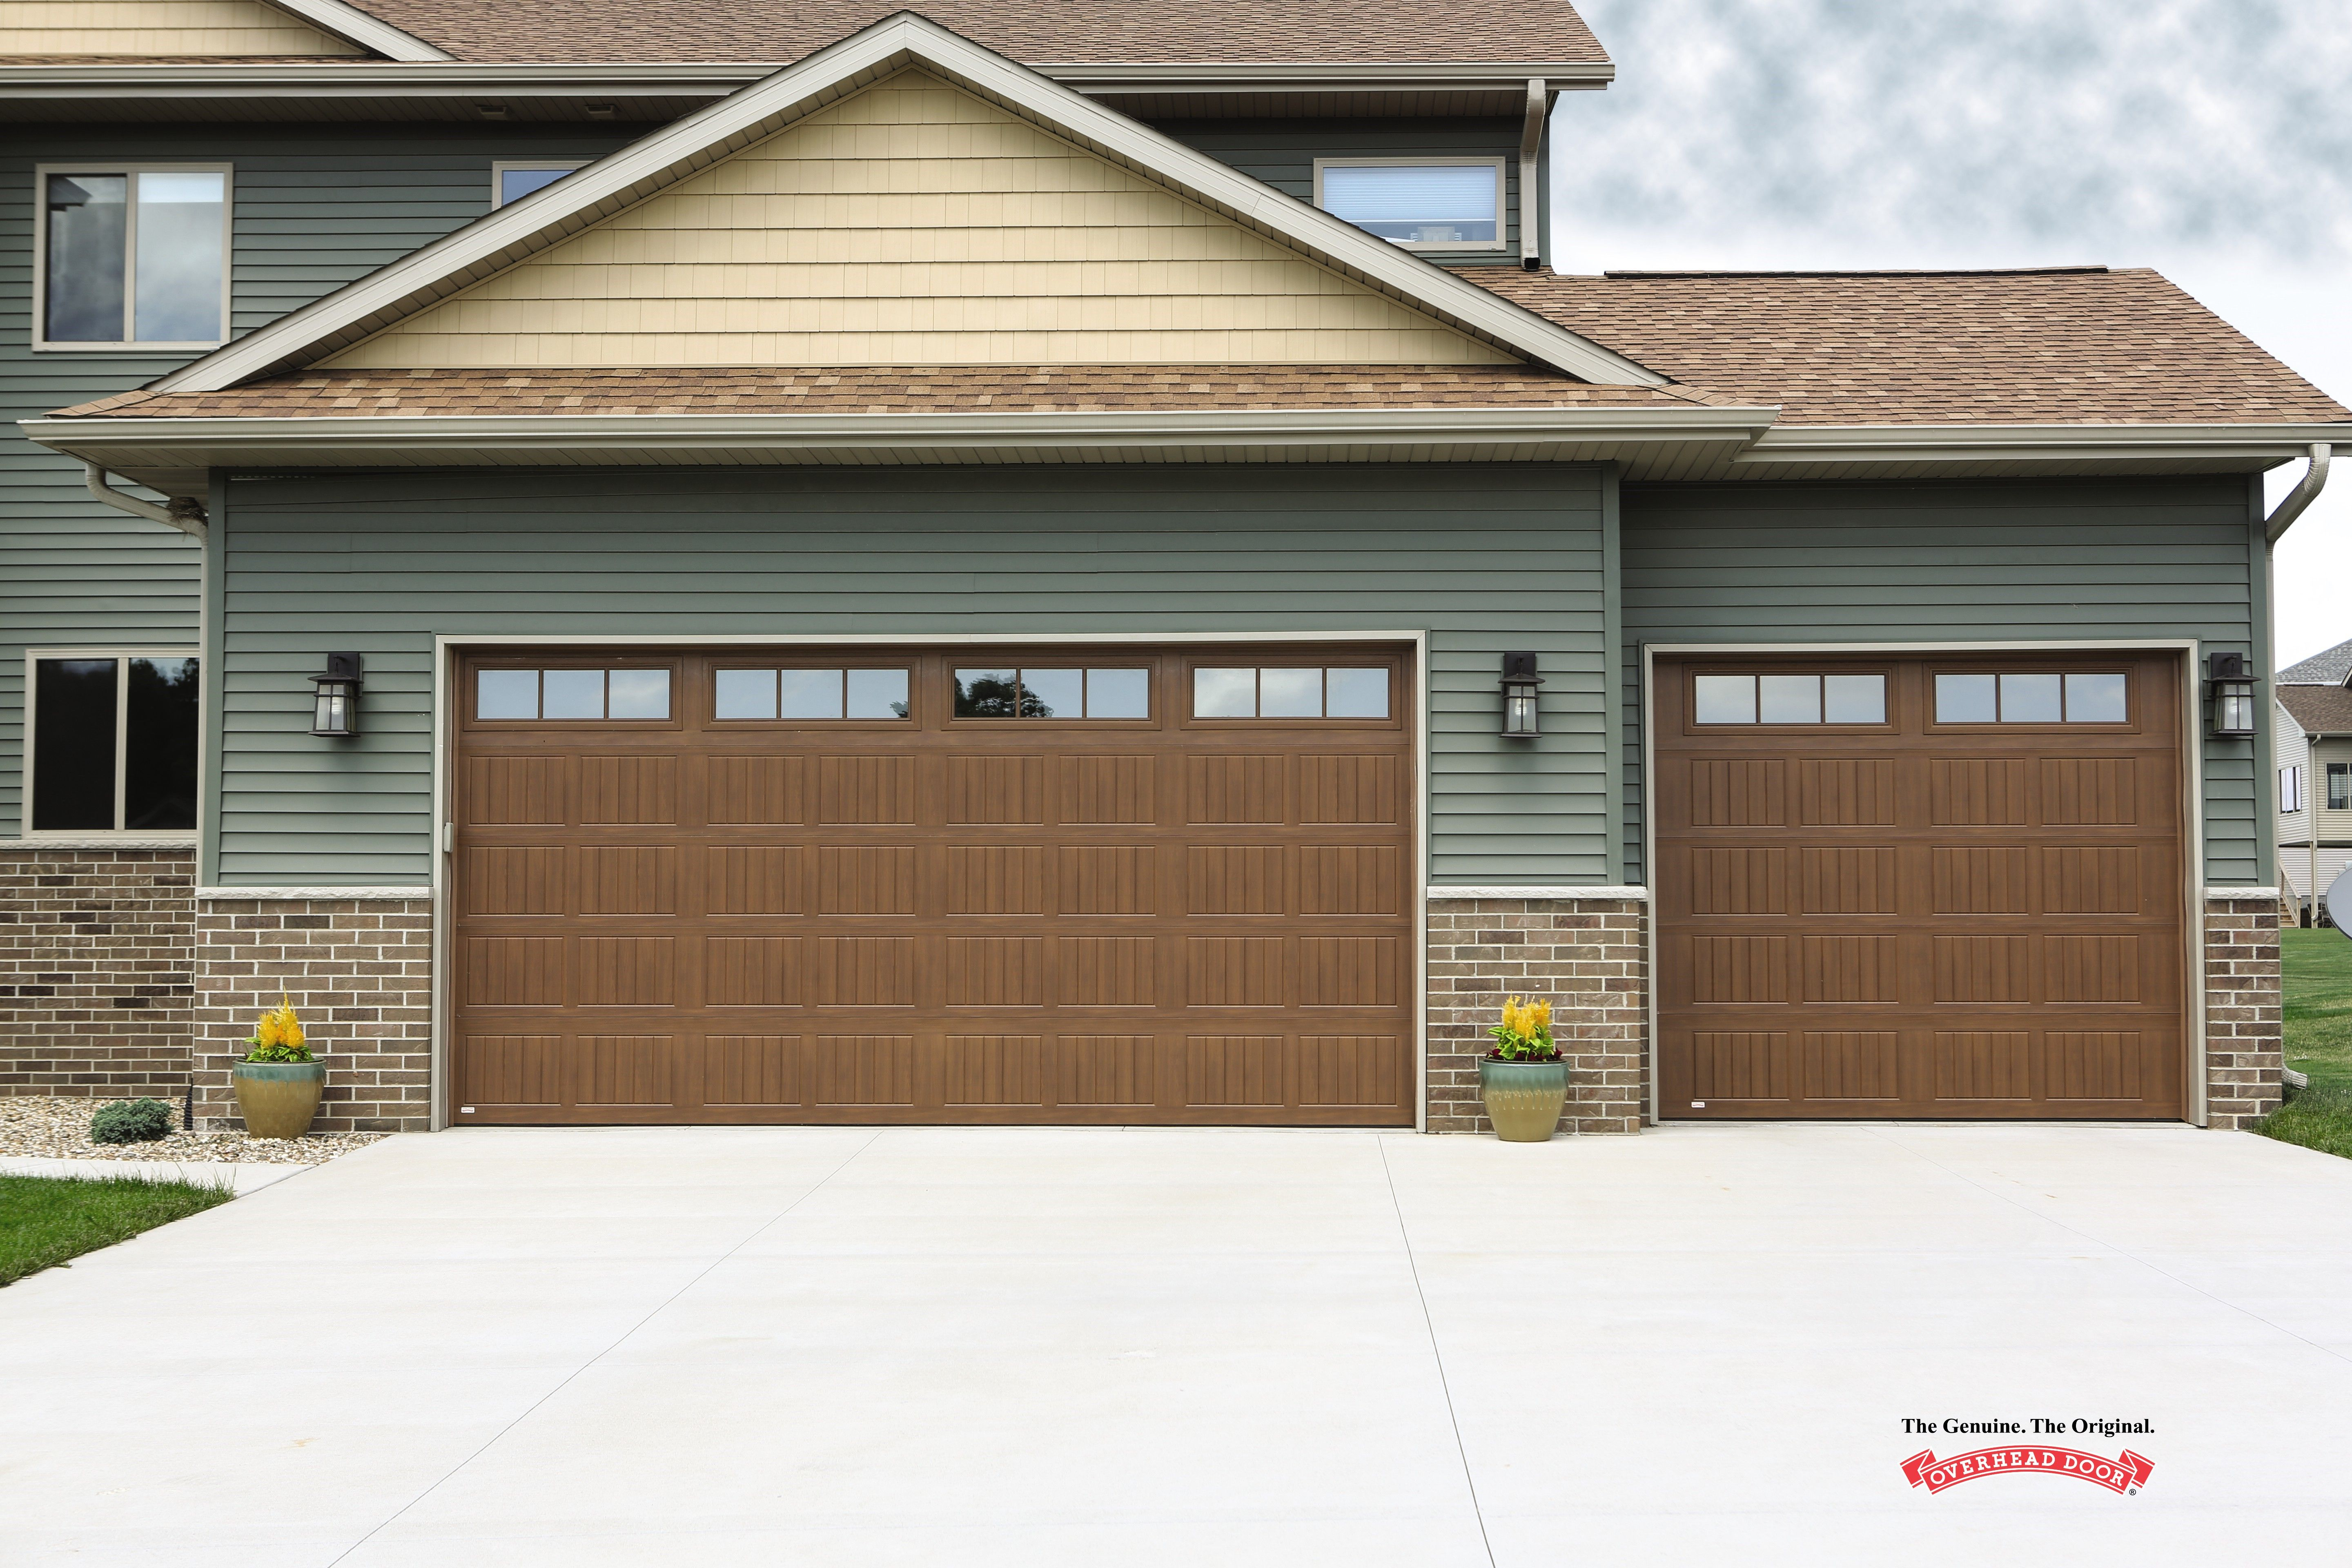 Find The Exact Insulation You Need From One Of Our Local Professionals R Value Of 12 76 For Model 5740 To Keep The Heat In During Those Tough Winte Garage Doors